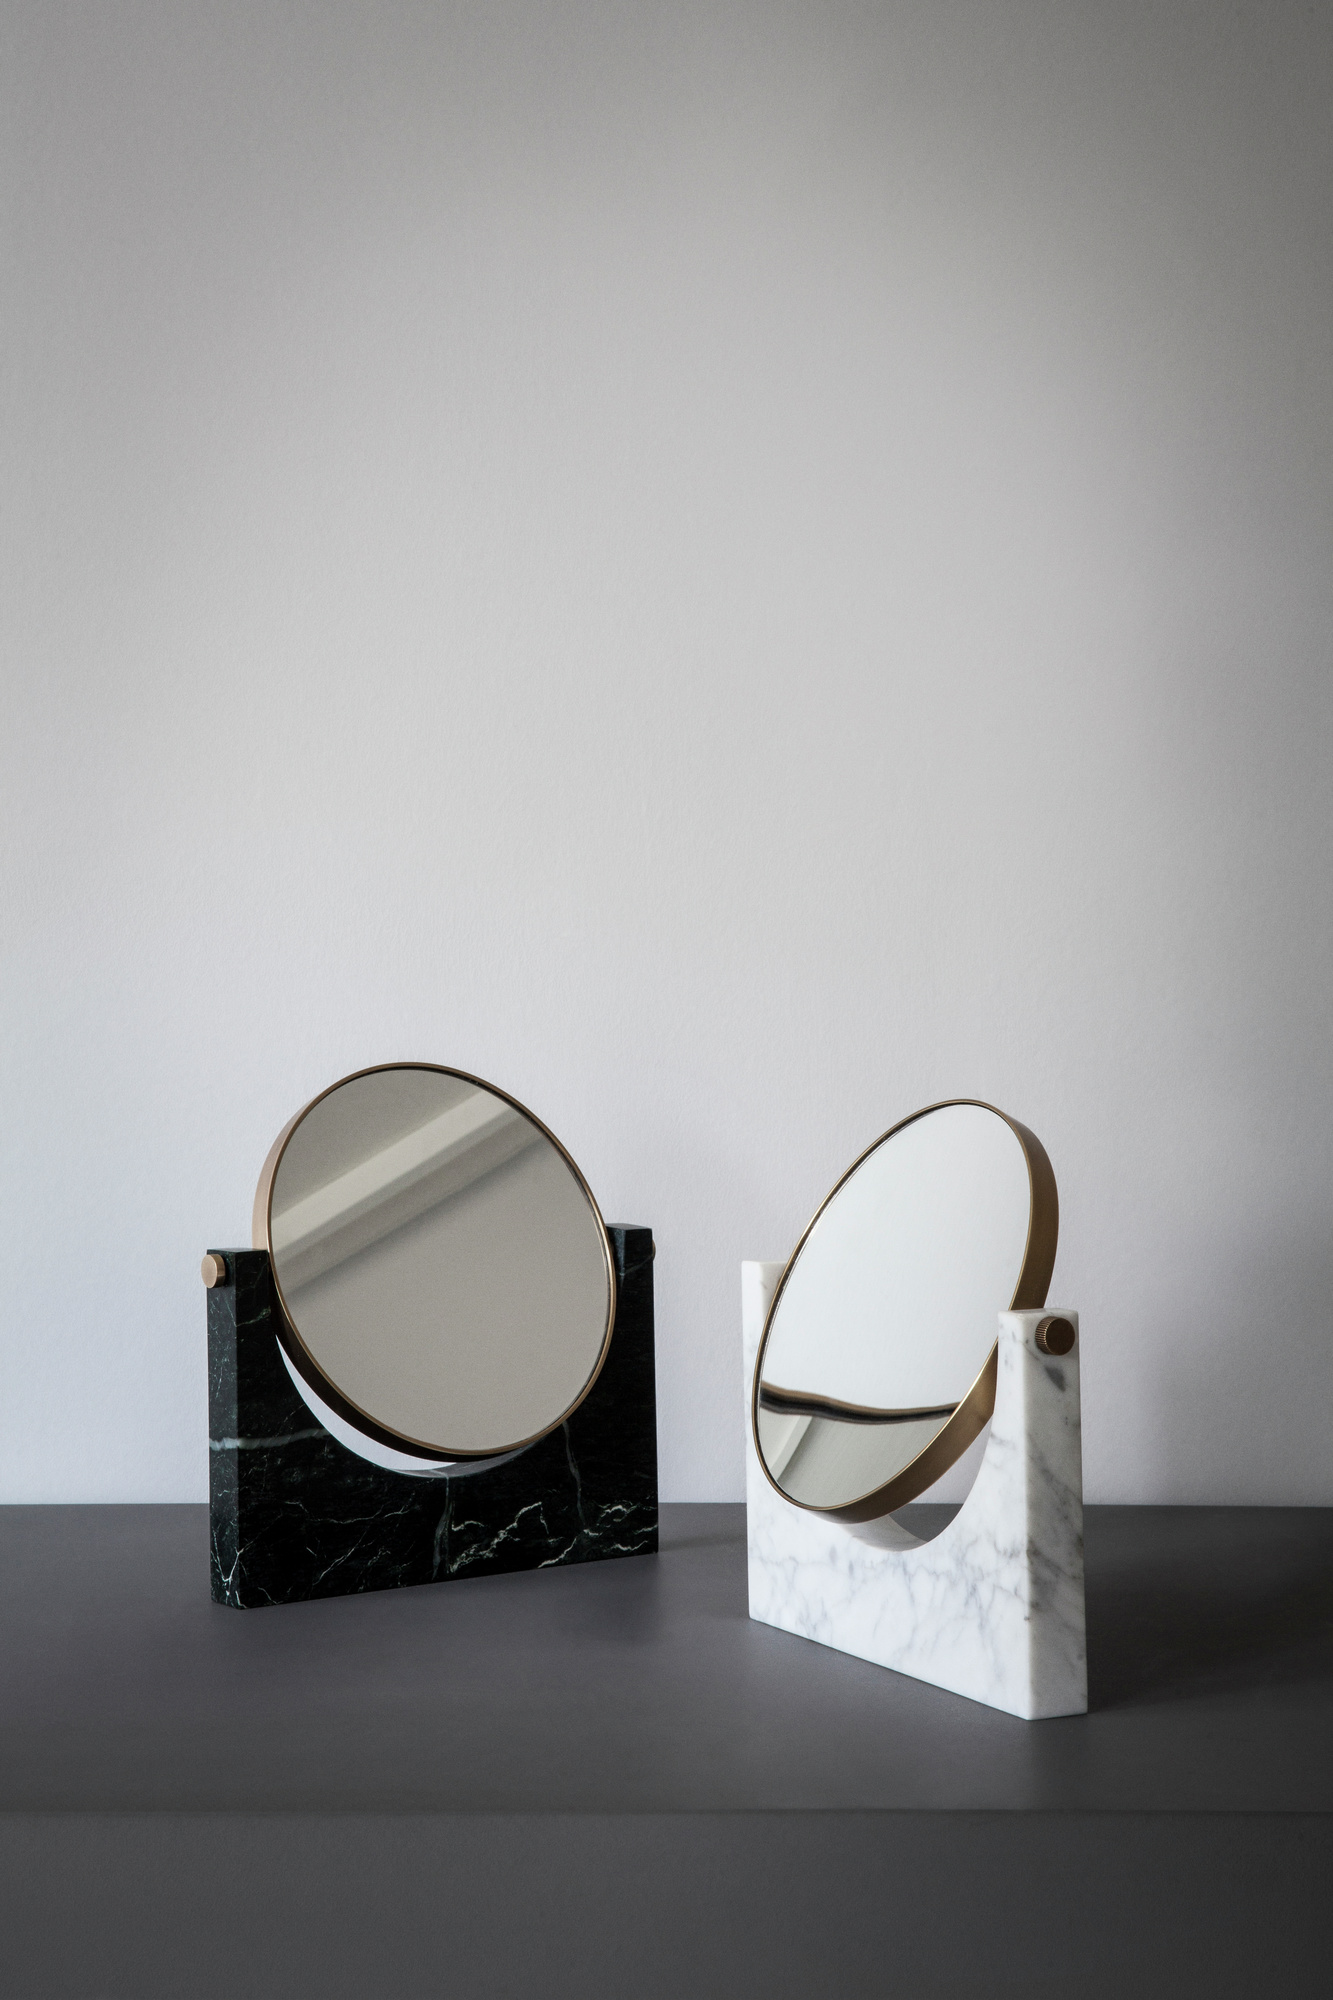 Pepe Marble Mirror By Studio Pepe For Menu Sofiliumm